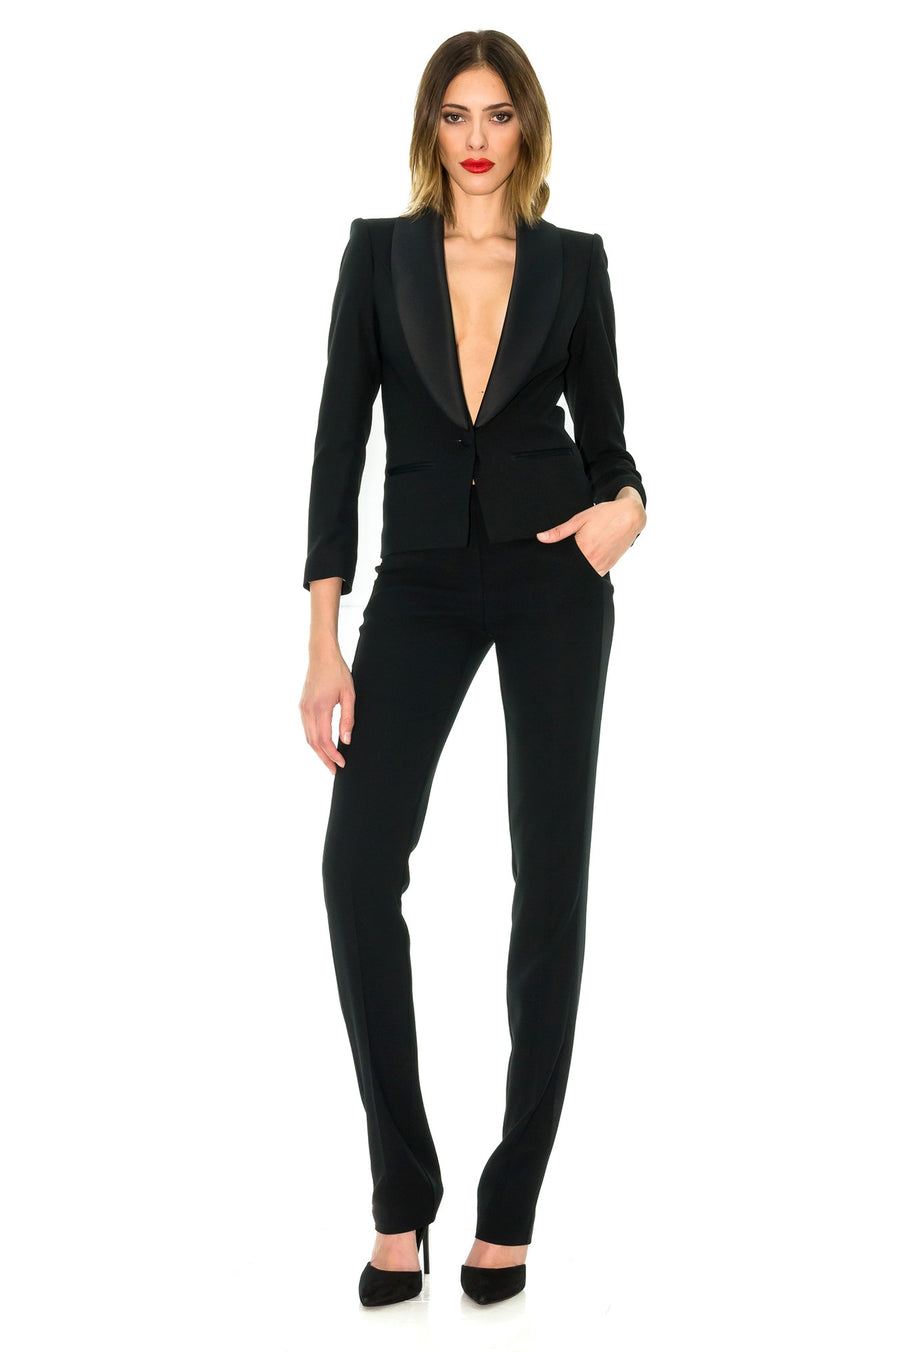 BLACK SHORT SLEEVE TUXEDO JACKET